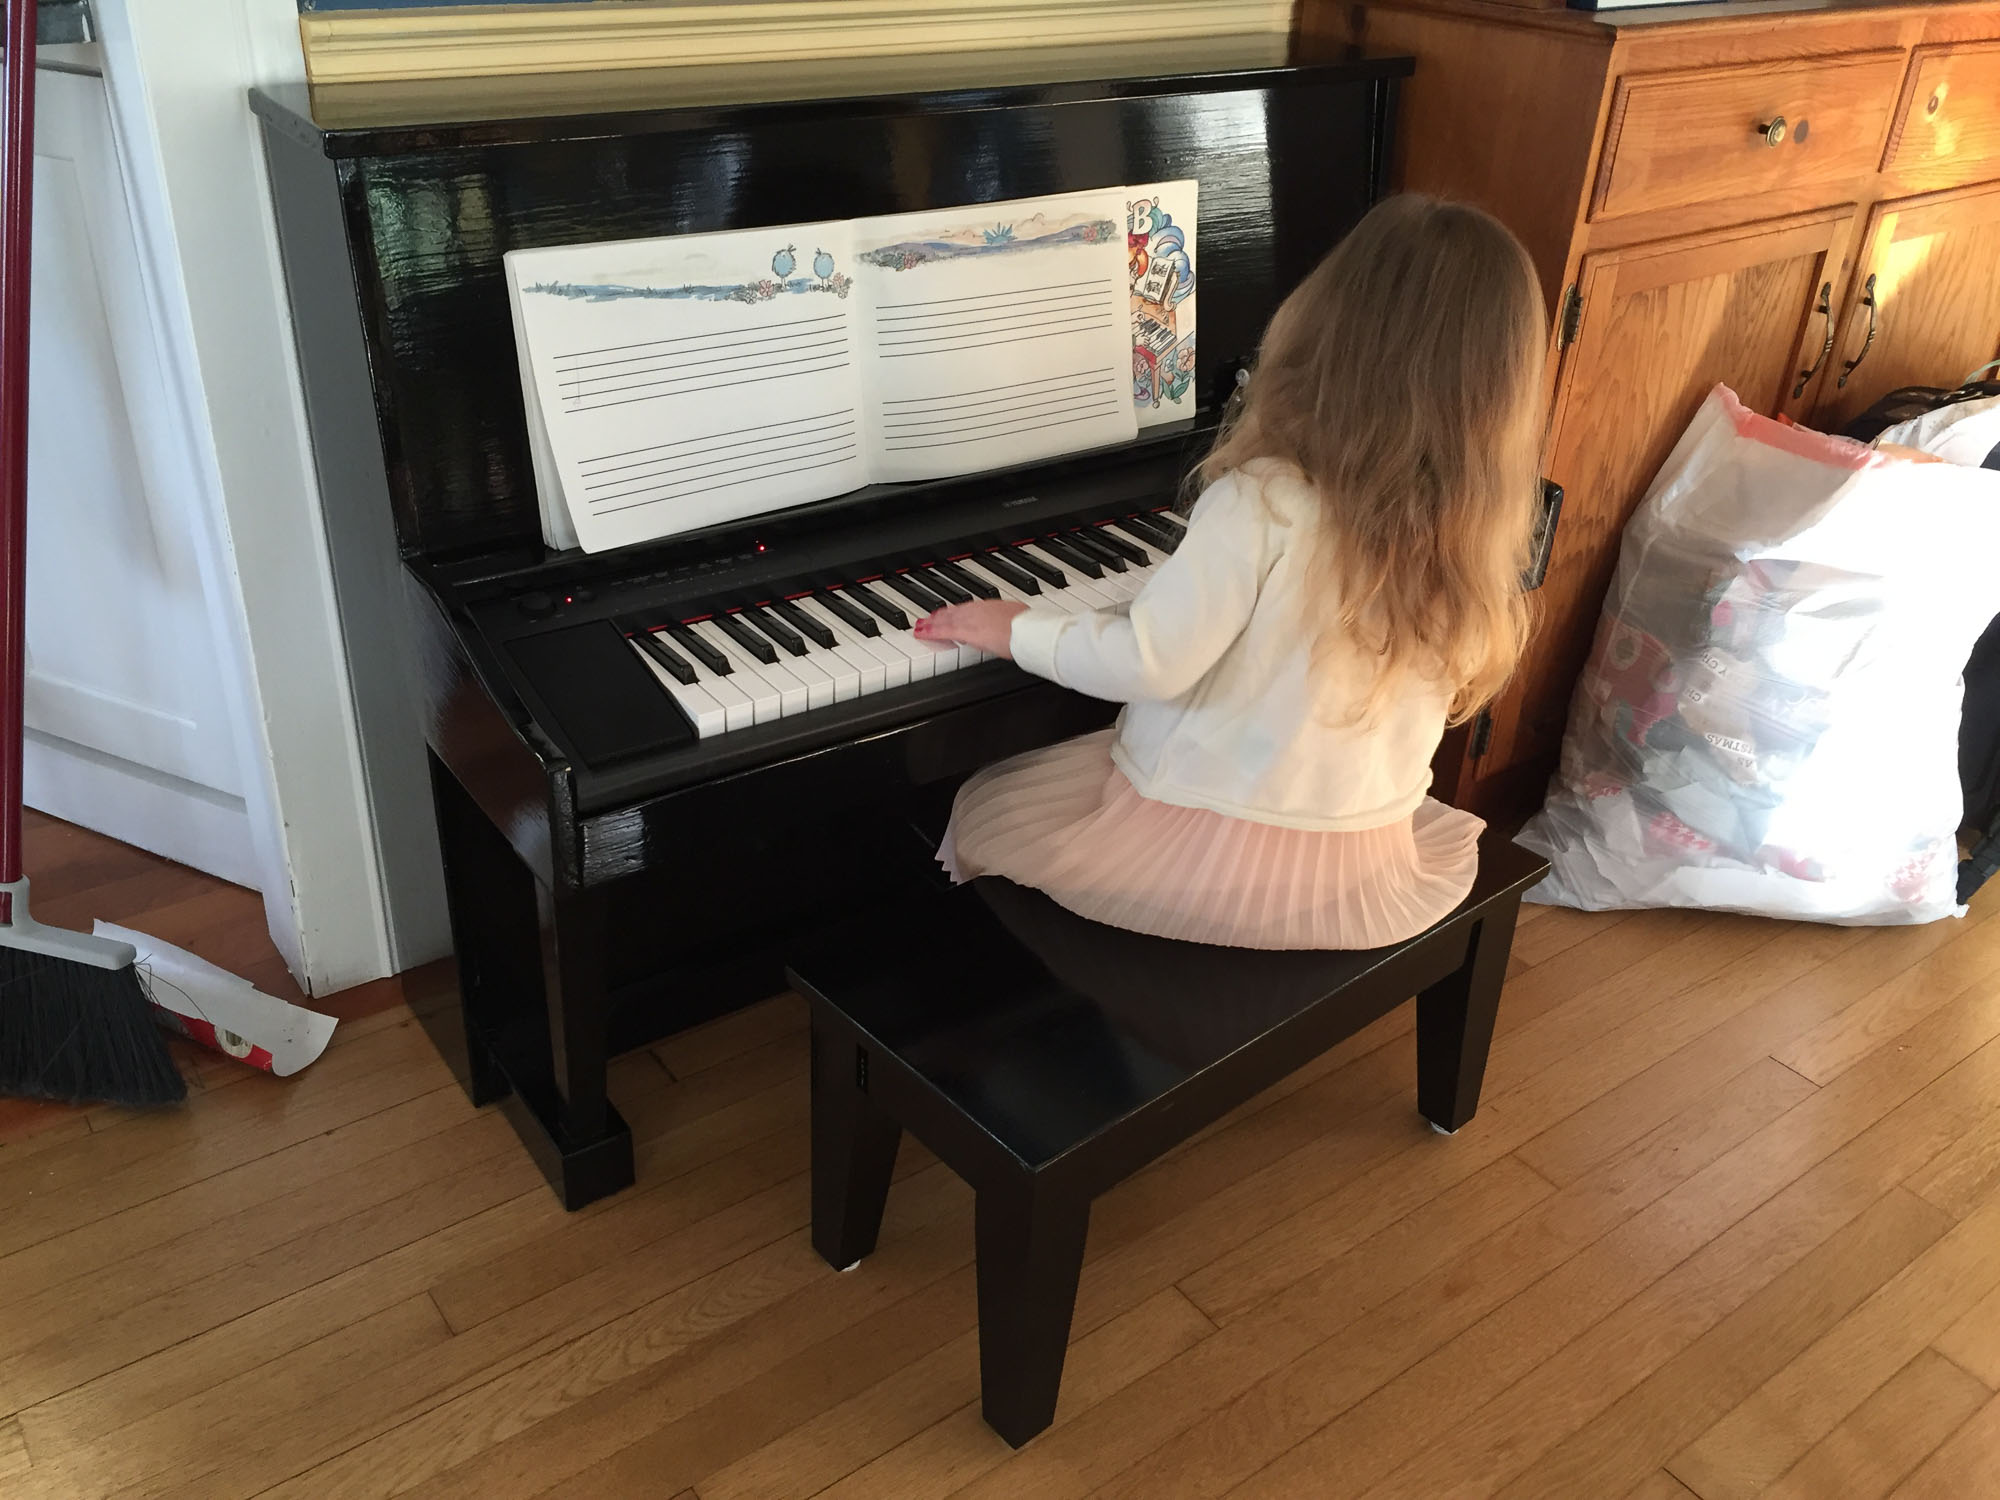 Avery playing the piano